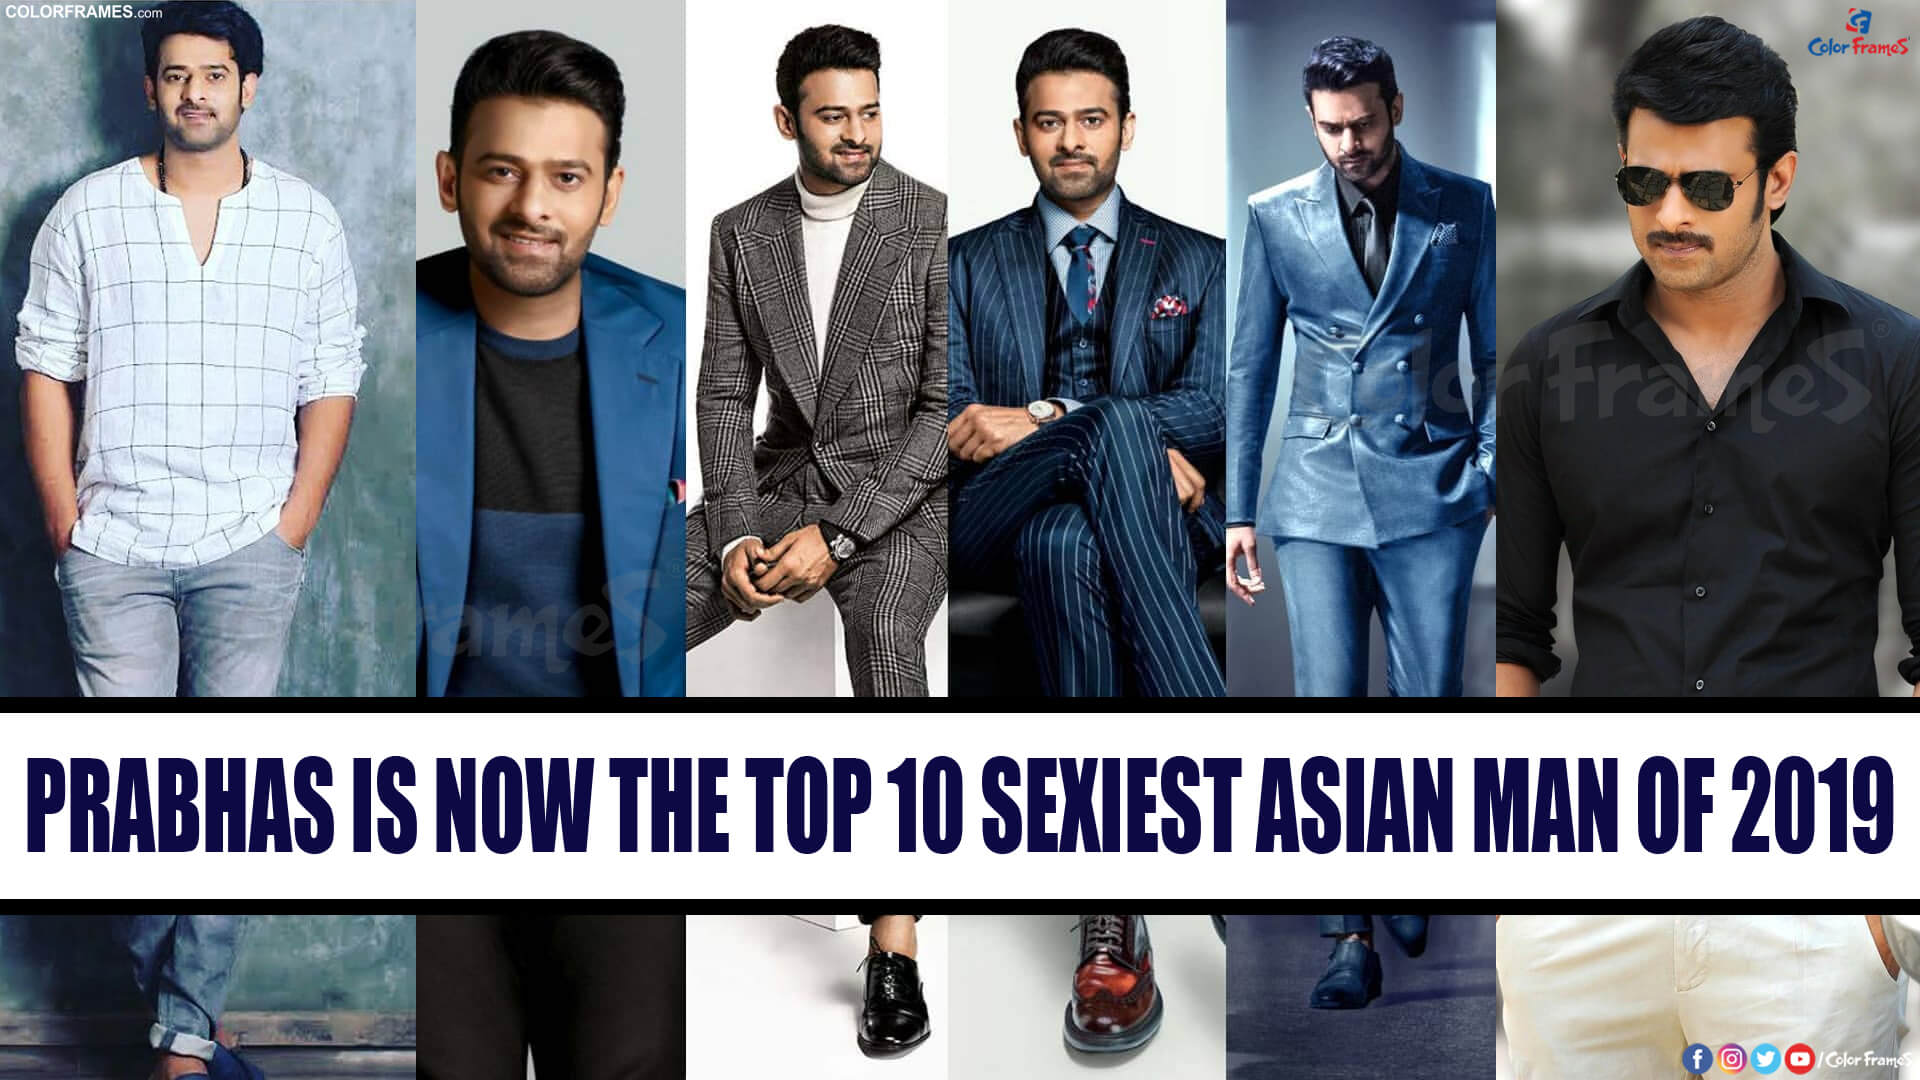 Prabhas is now the Top 10 Sexiest Asian Man of 2019